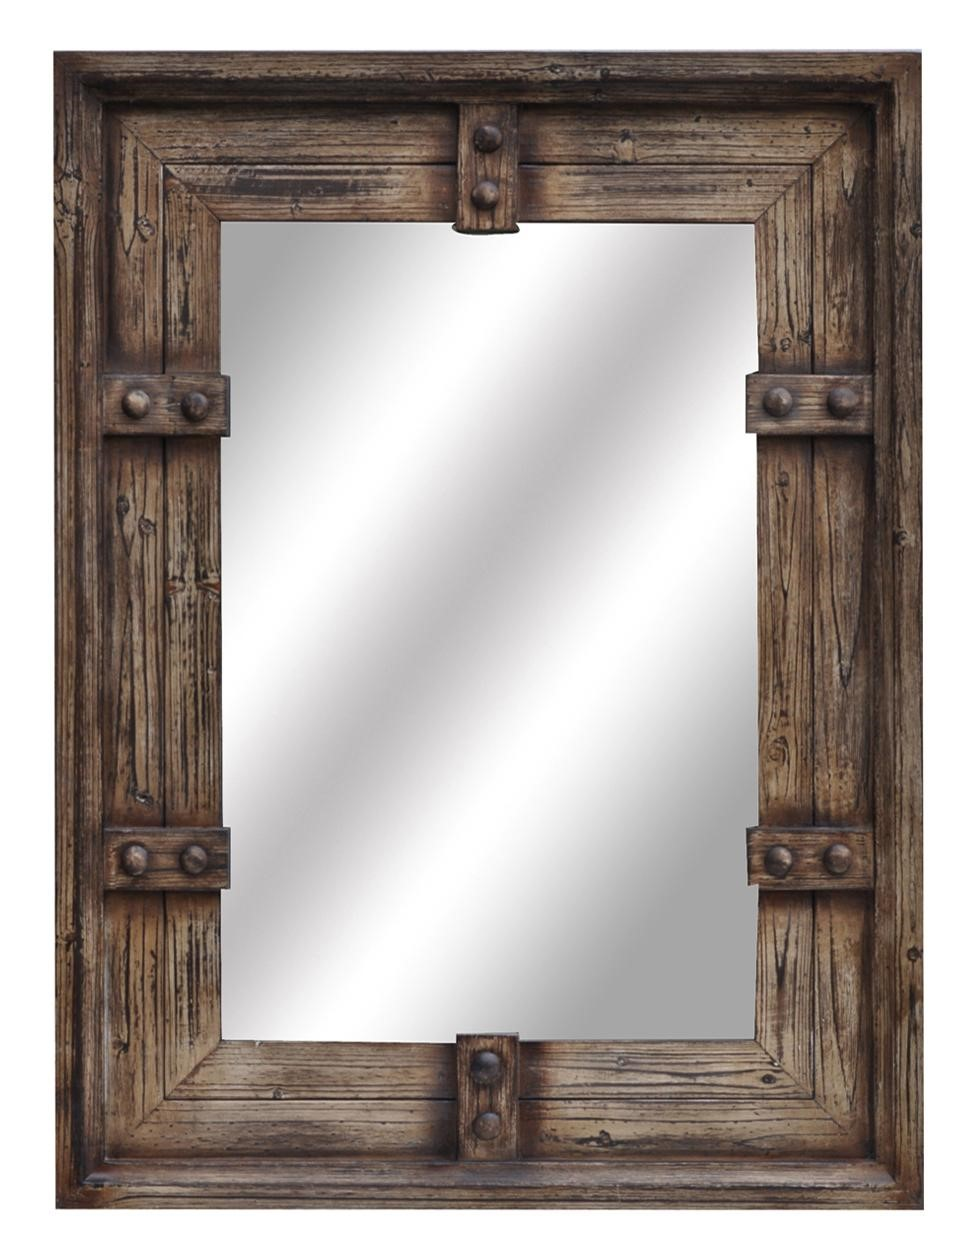 Rustic Mirrors Home Decor 28 Images Rustic Wood Mirror